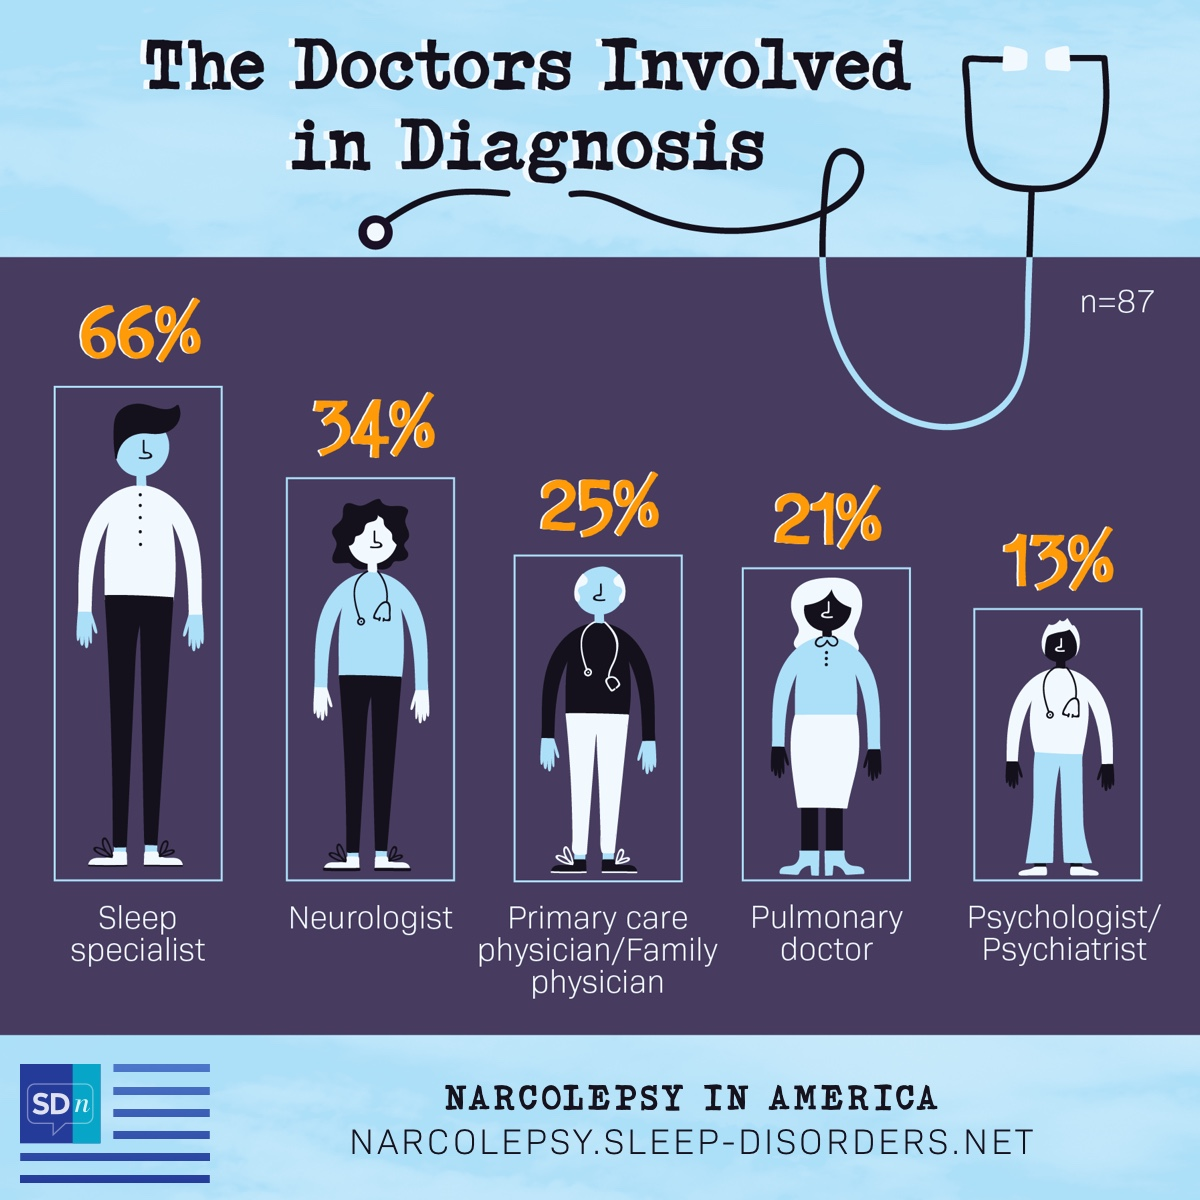 According to the Narcolepsy In America Survey, the doctor breakdown used to diagnose narcolepsy are 66% sleep specialist, 34% neurologist, 24% PCP, 21% pulmonologist, 13% psychiatrist or psychologist.